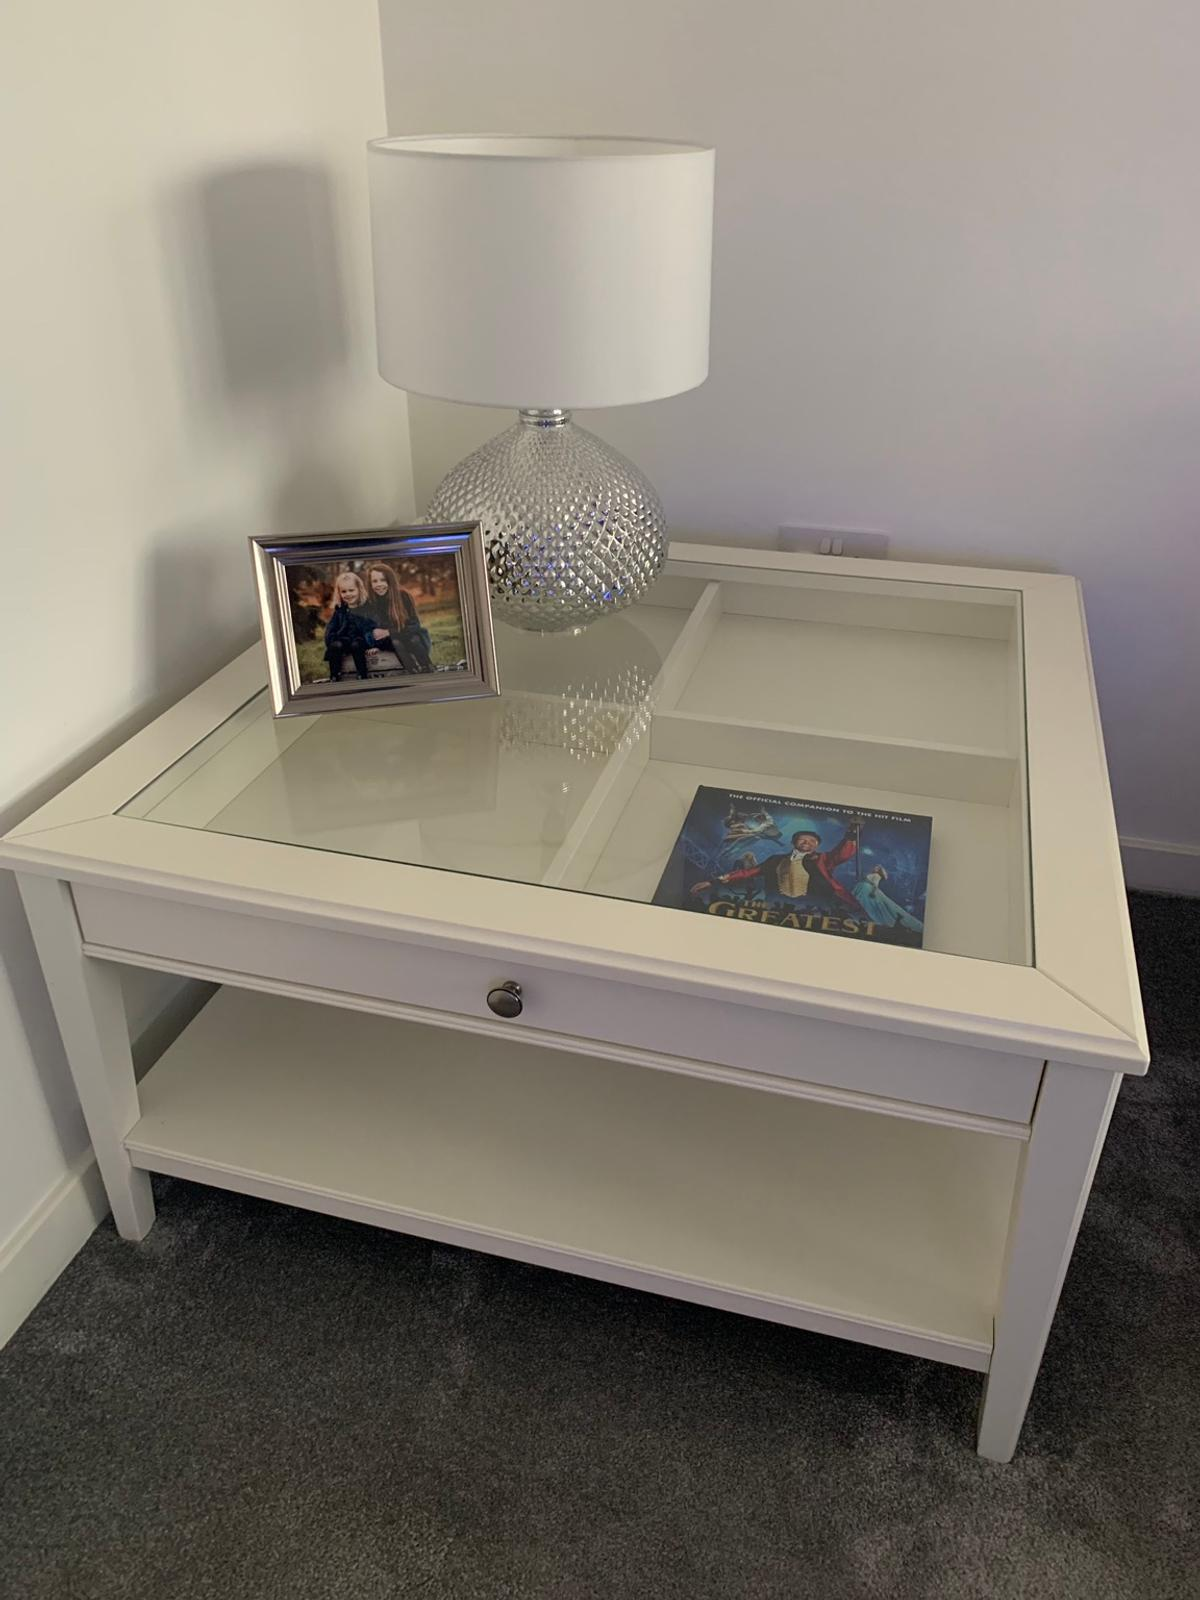 Surprising Ikea White Glass Coffee Table With Drawer Lamtechconsult Wood Chair Design Ideas Lamtechconsultcom